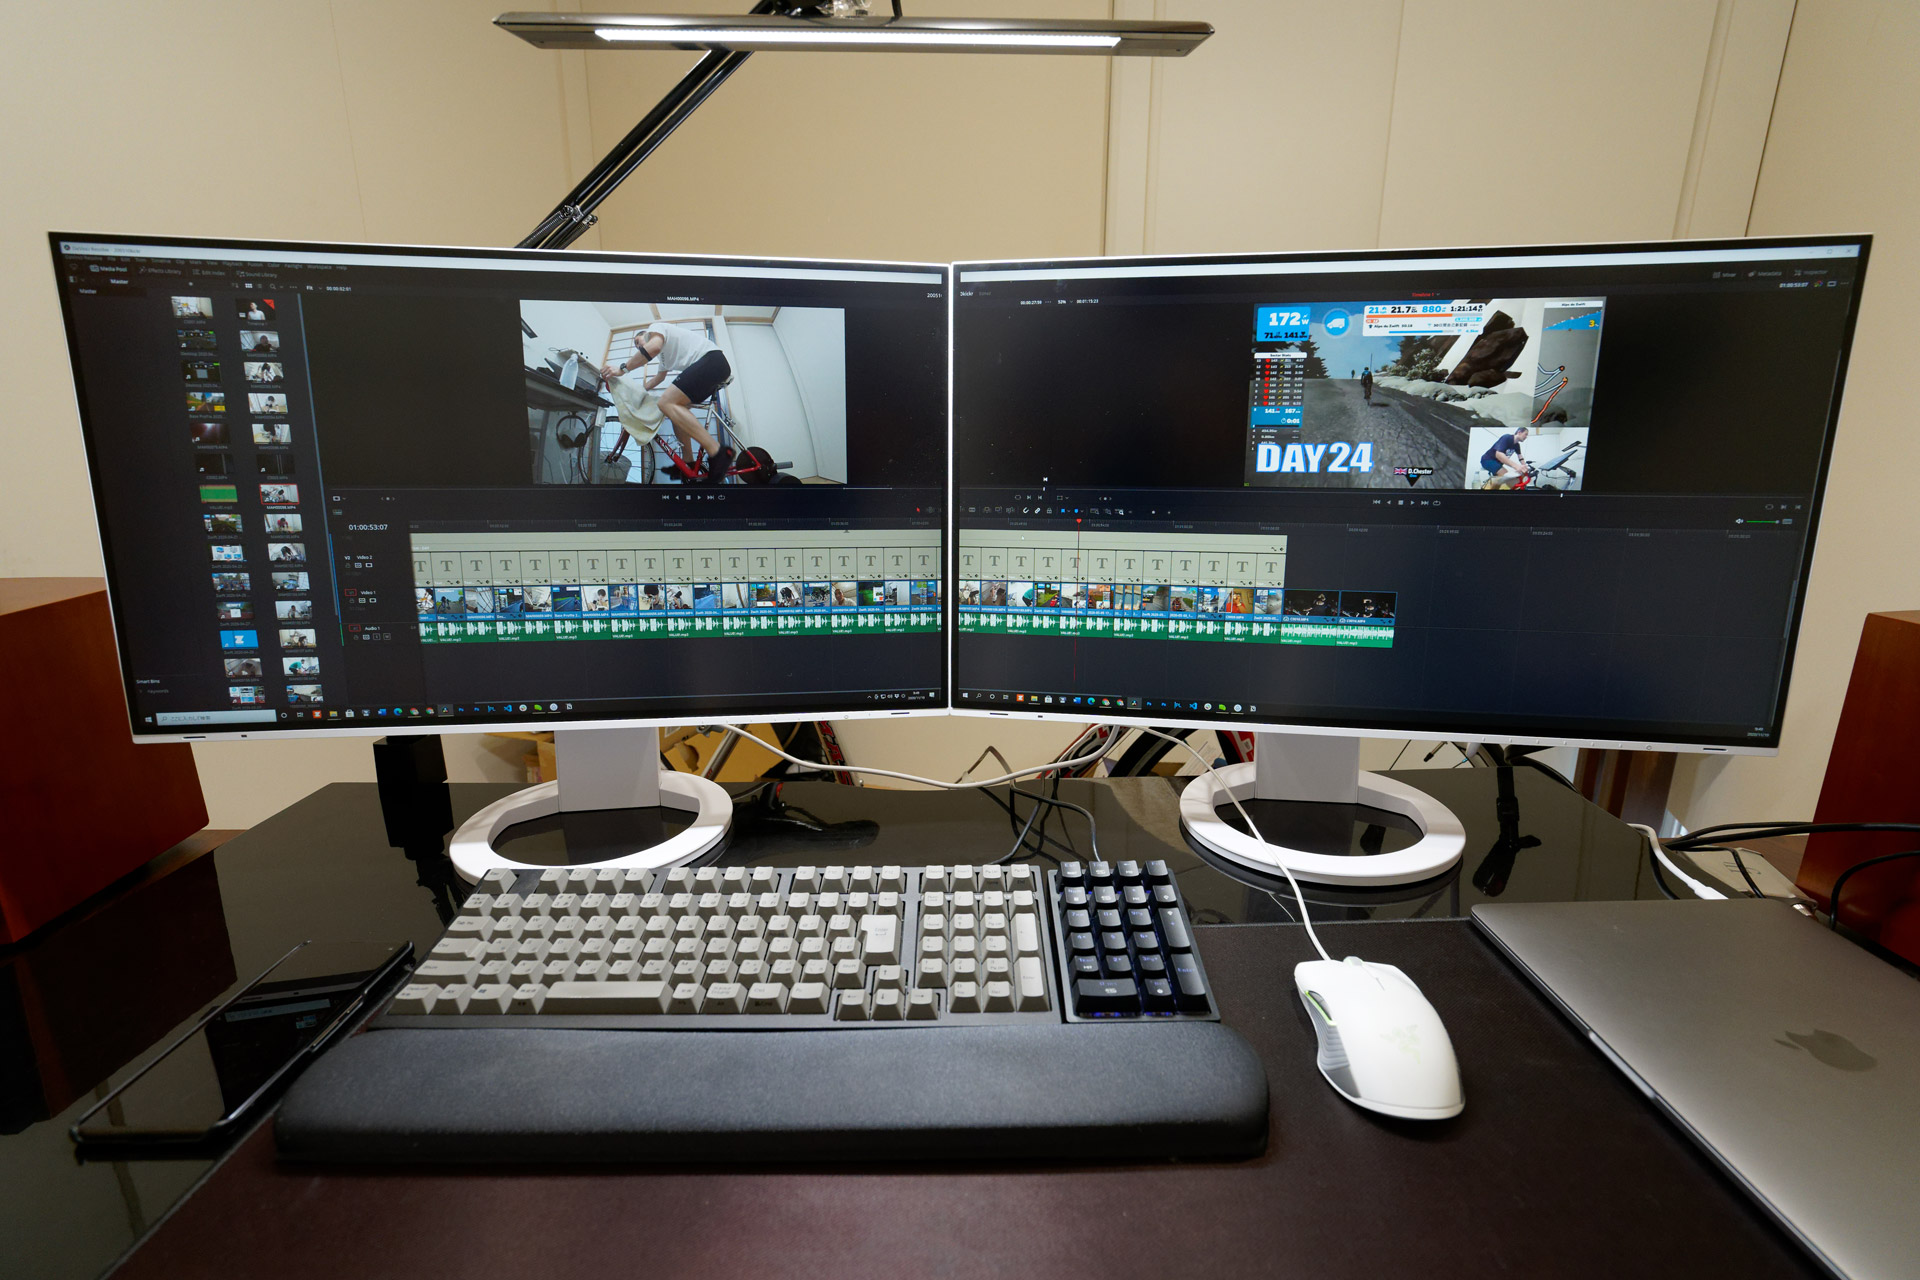 Efficiently editing video over an extensive workspace of 5120 x 1440 pixels.